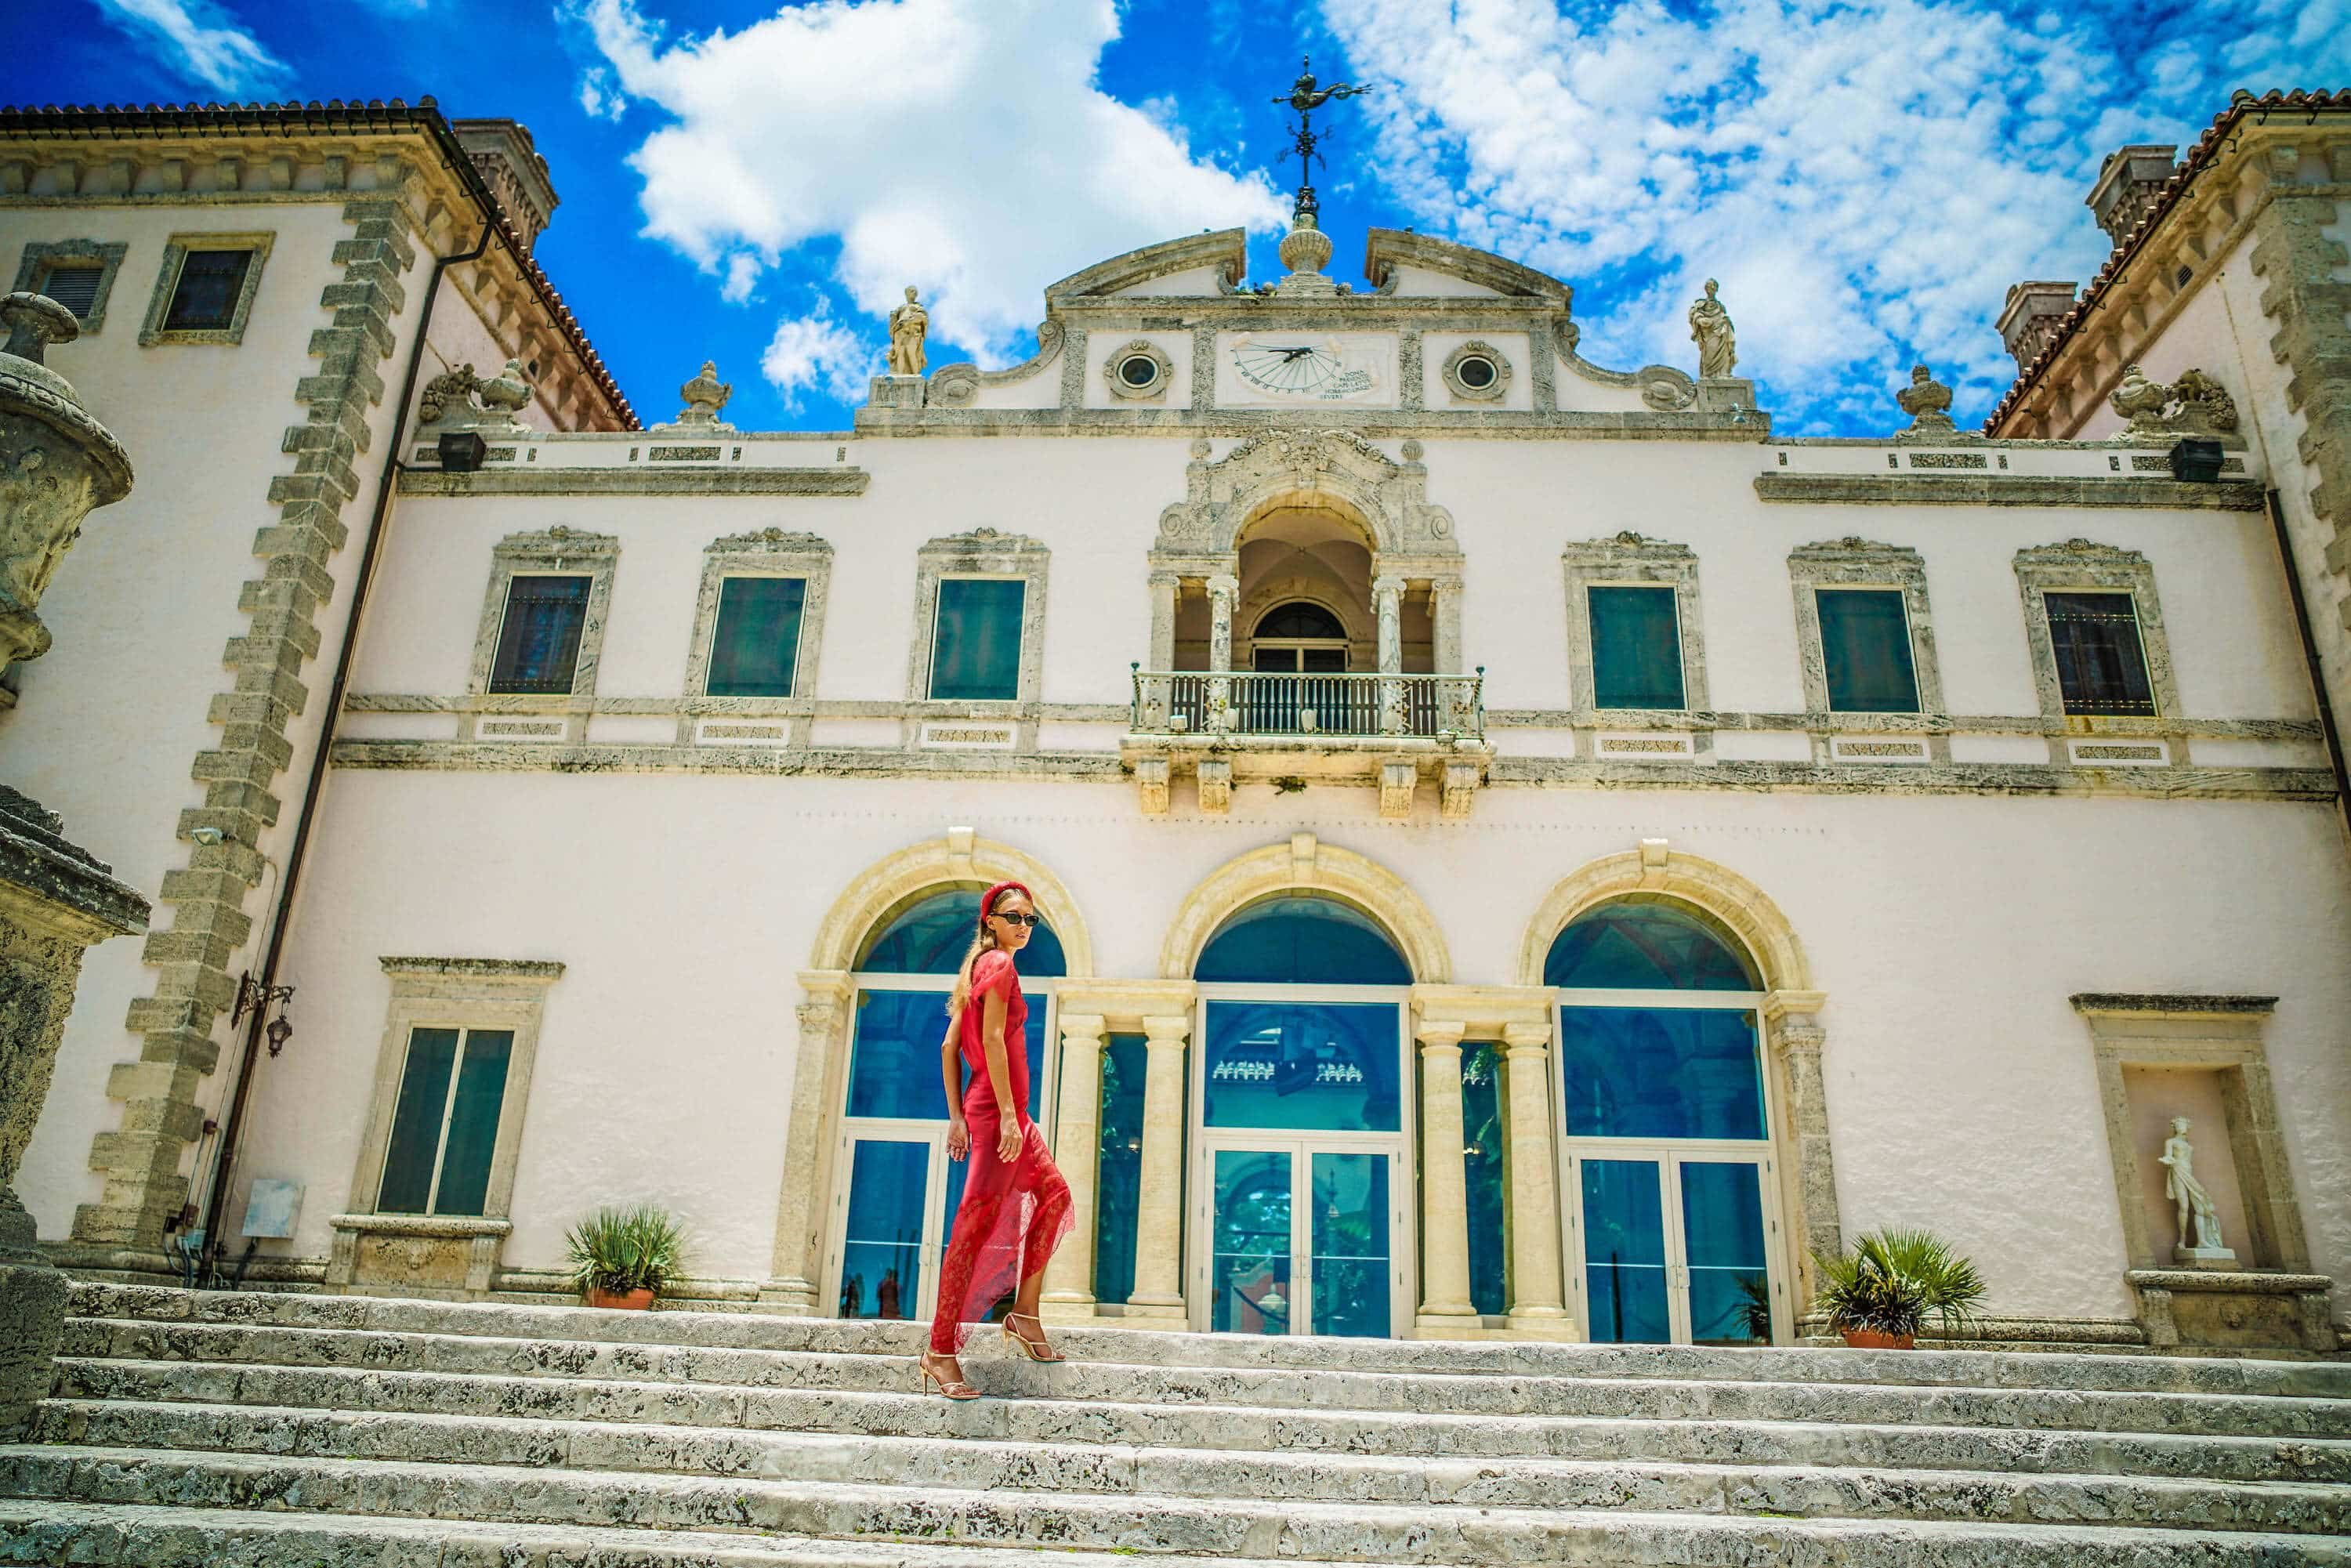 a6d736e928ca16dea7b22d03a3bd3f78 - History Of Vizcaya Museum And Gardens